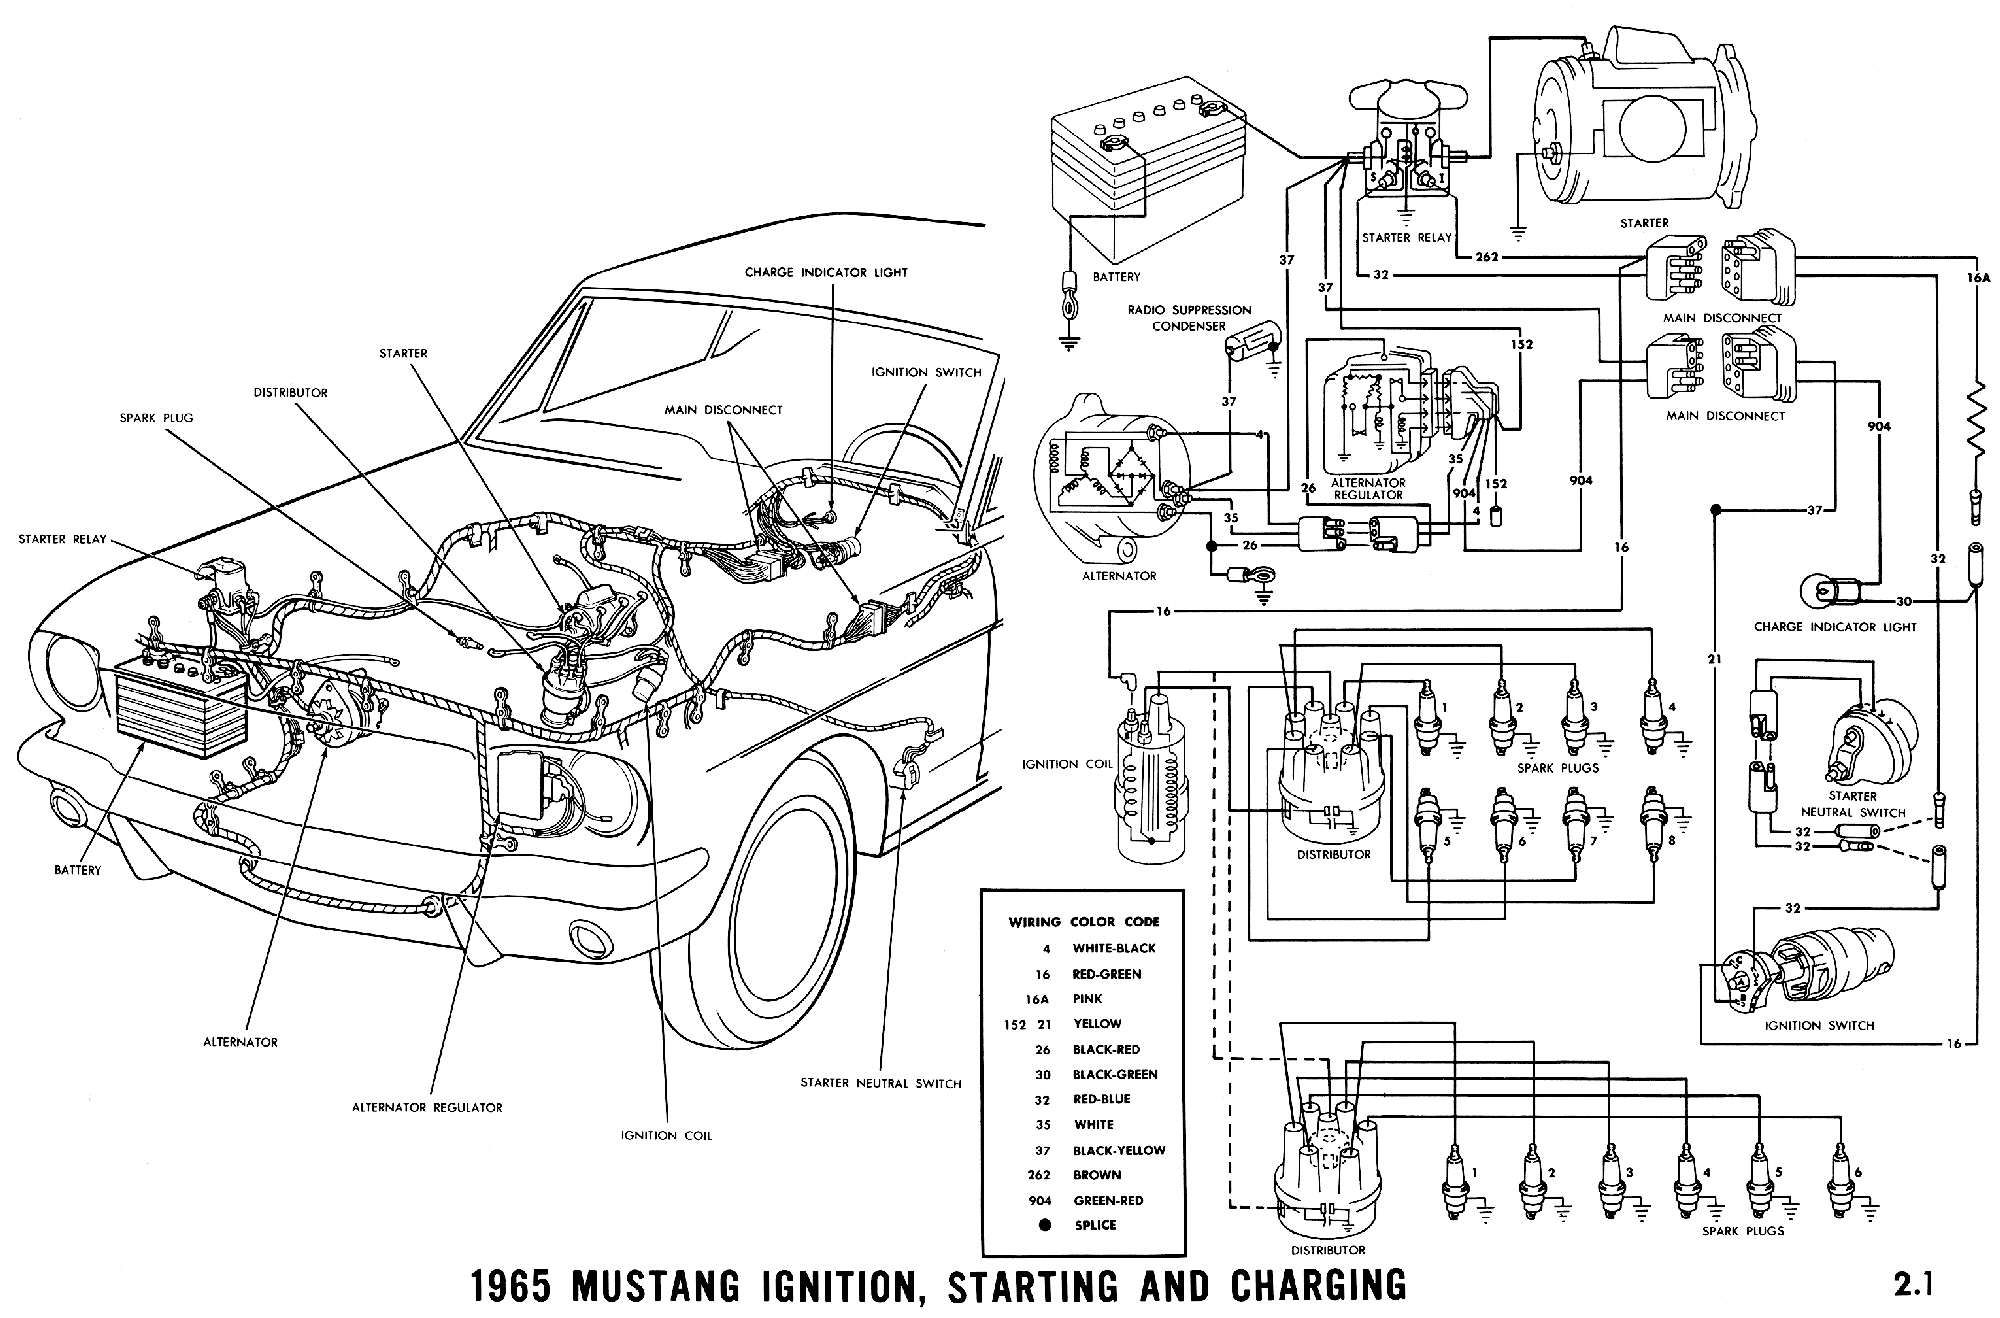 small resolution of 1965 mustang wiring diagrams mustang 1965 mustang mustang wiring diagram 1970 mustang coup